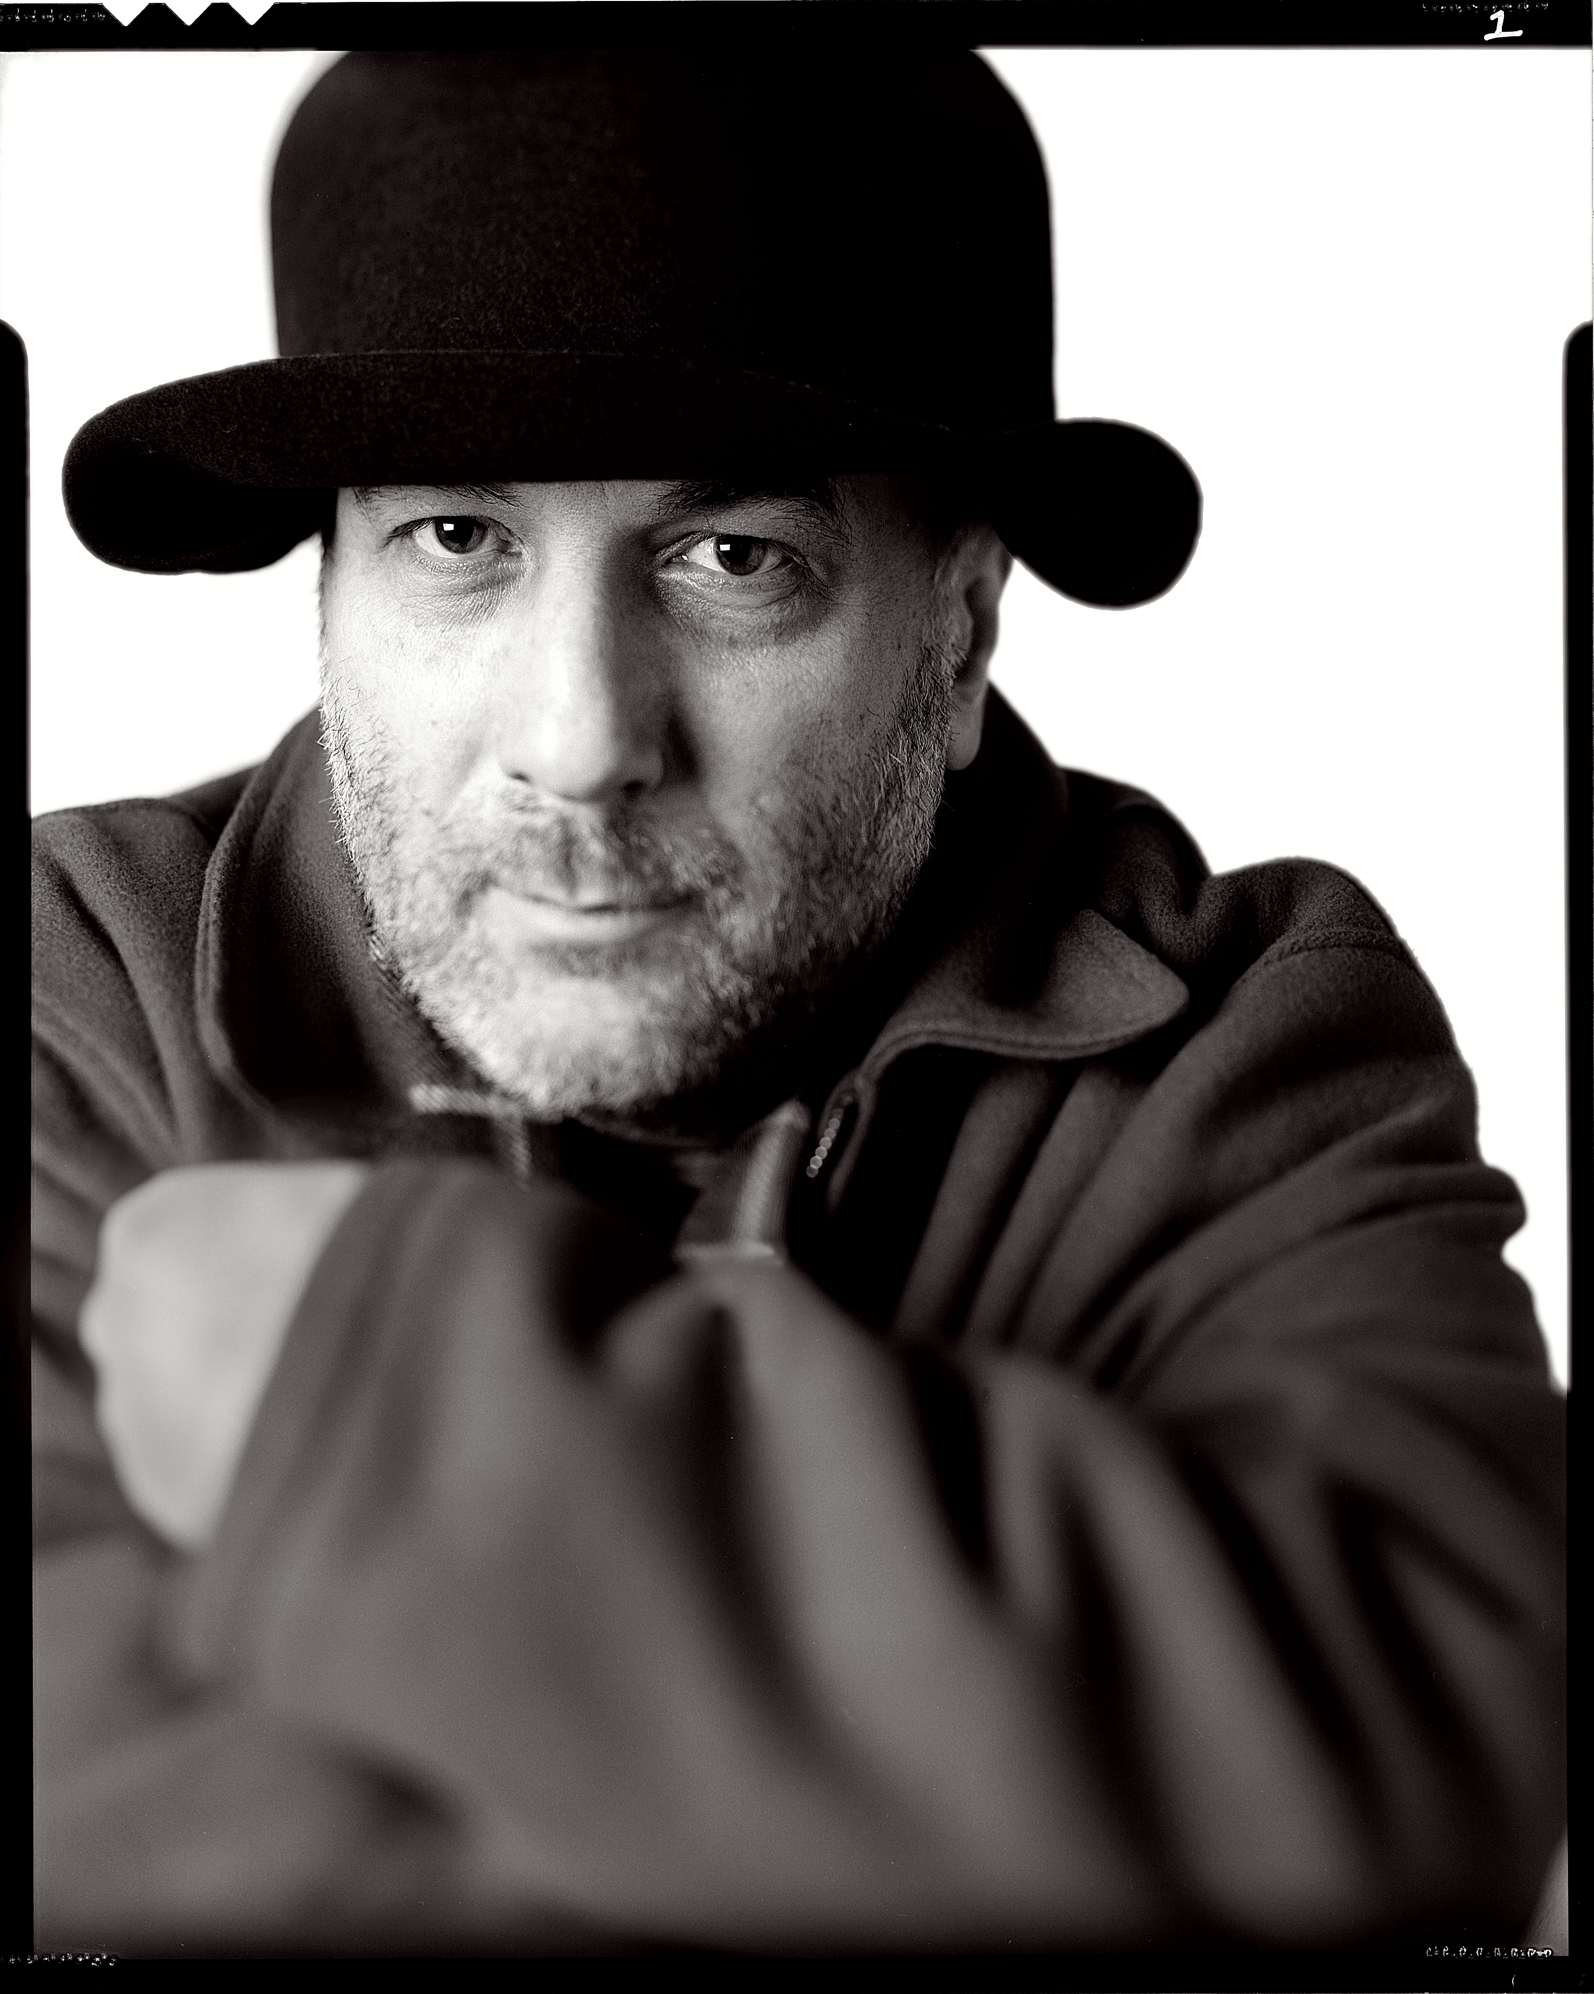 Ron Arad, Furniture Designer. 5x4 Gandolphi b+w. Portrait by Anthony Oliver